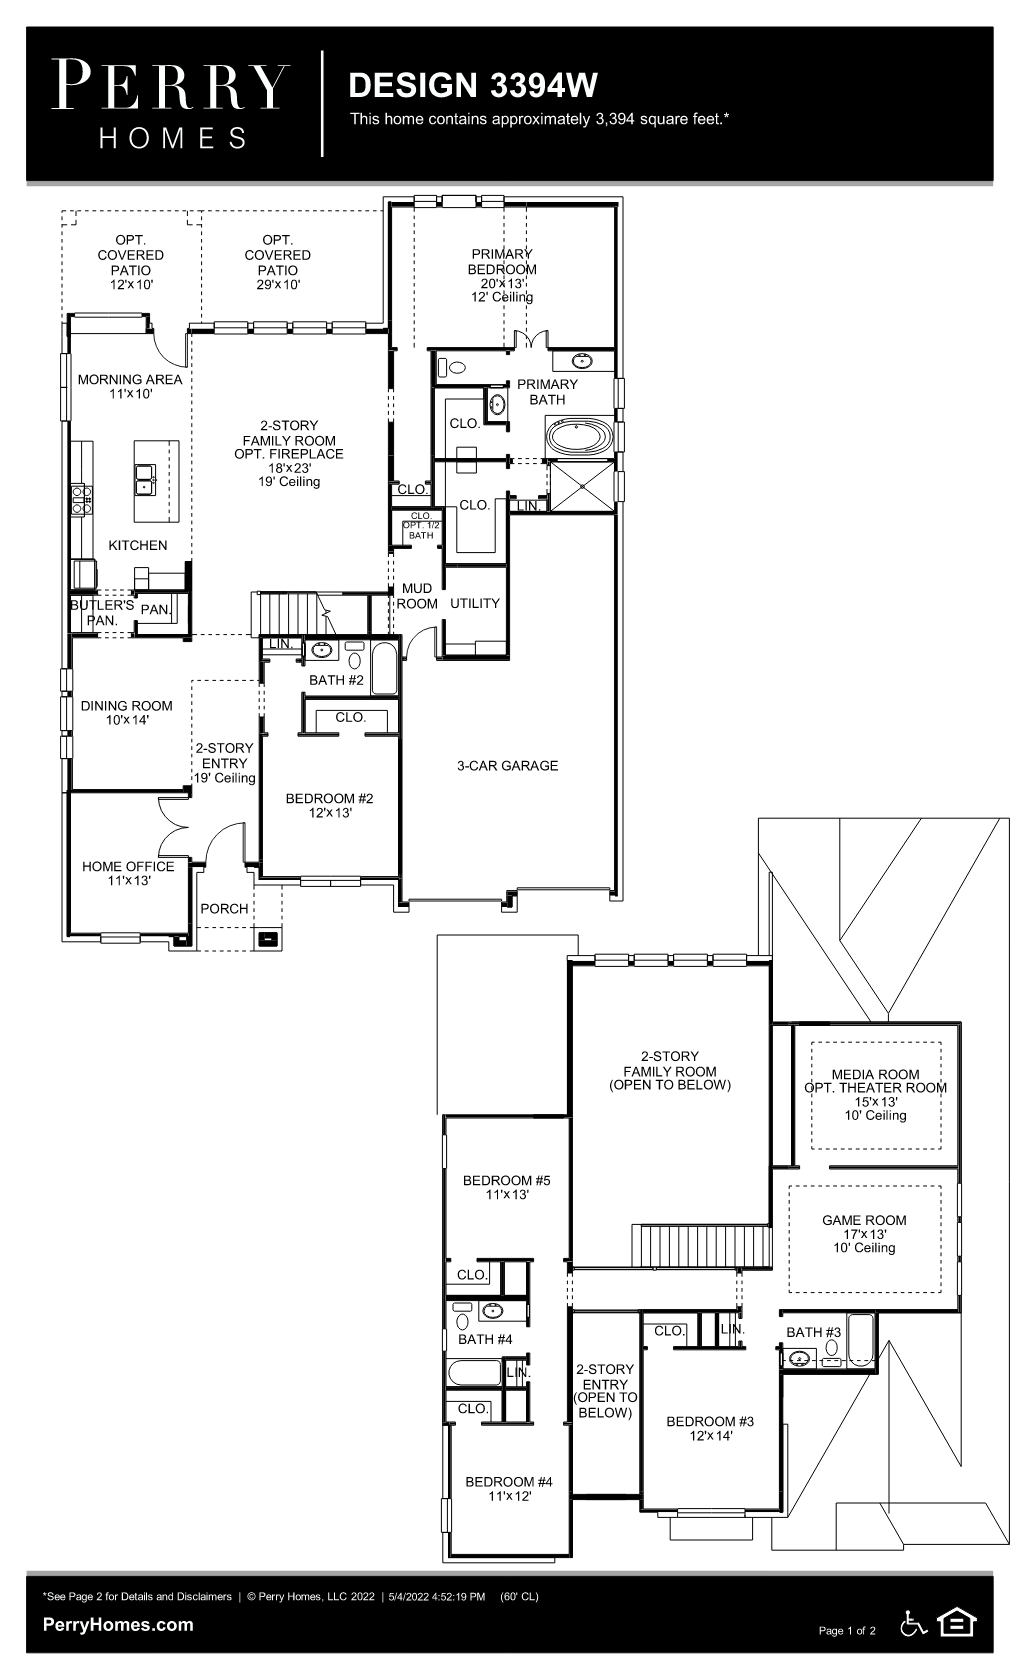 Floor Plan for 3394W